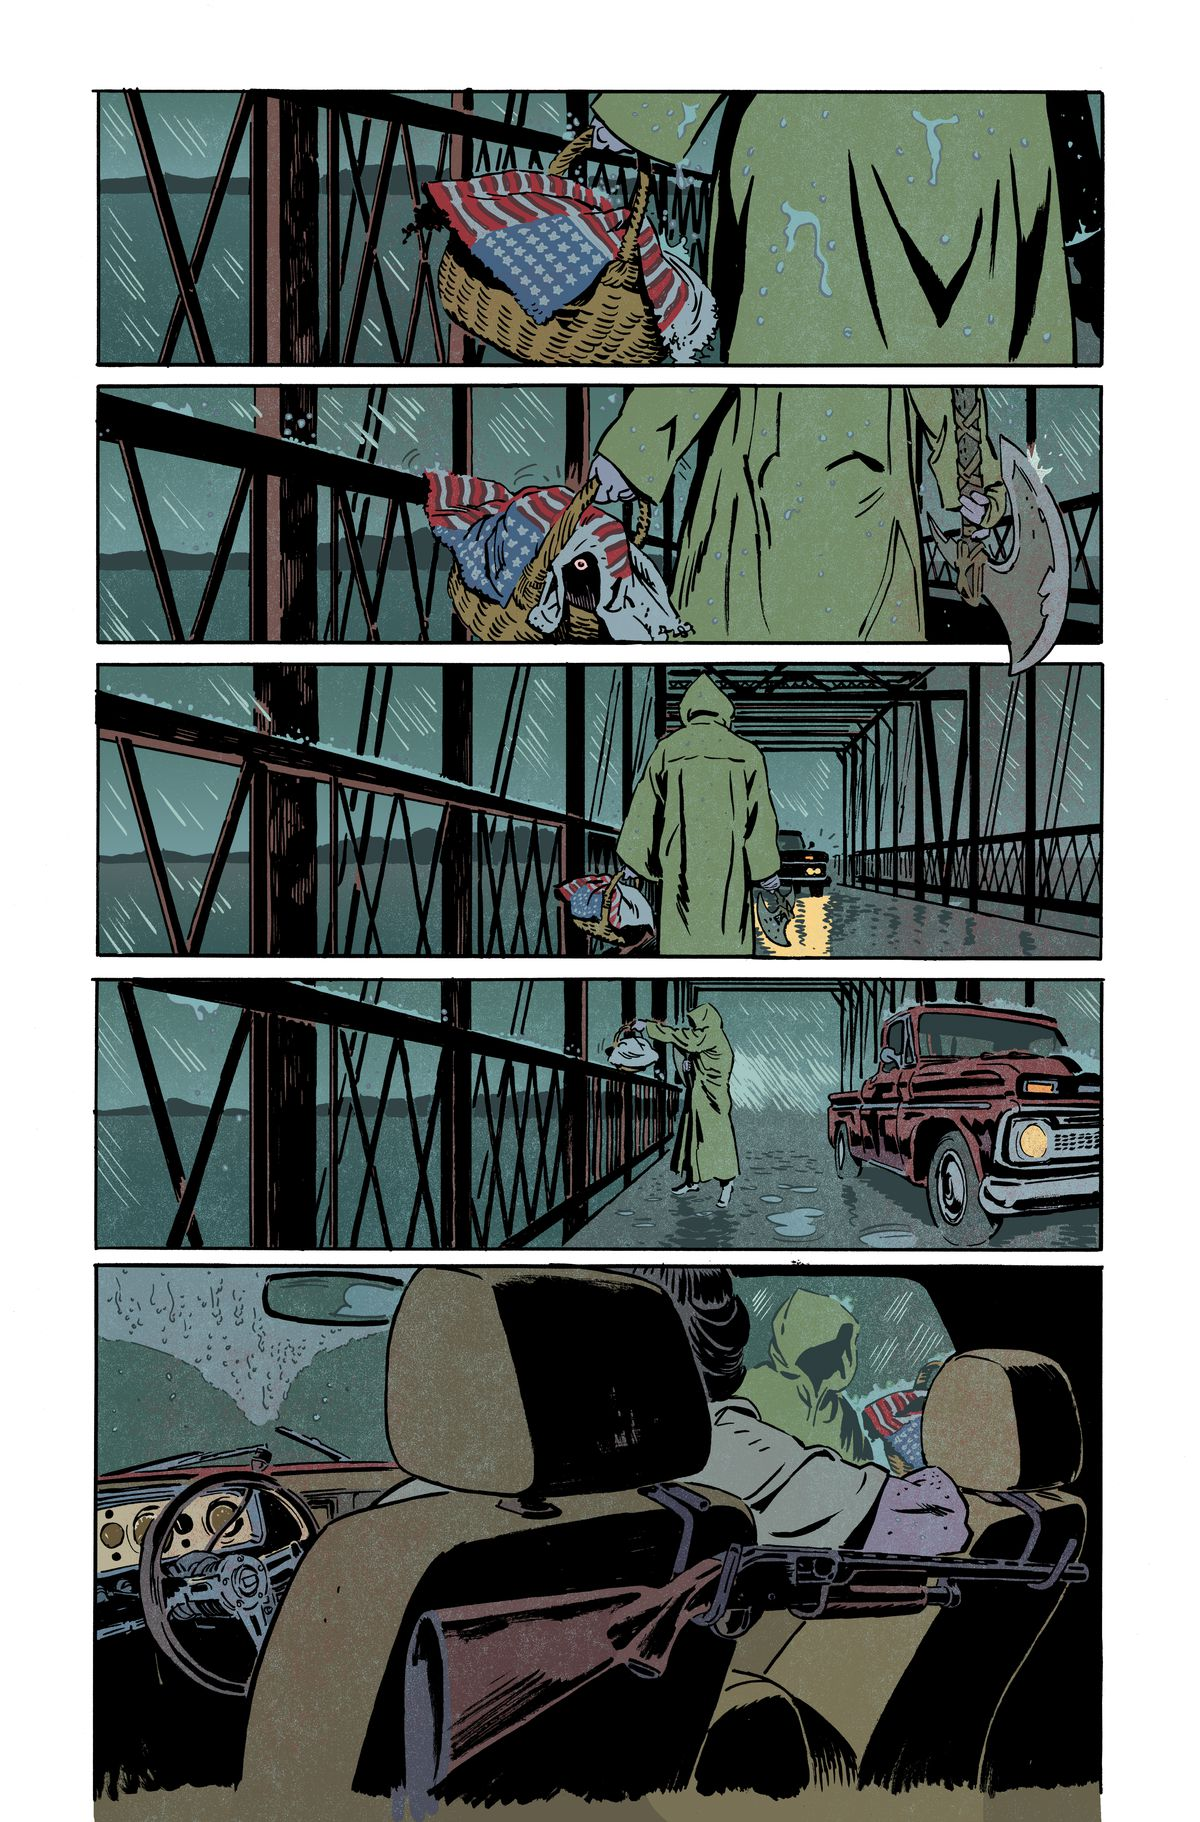 A figure in a rain slicker walks across a rainswept bridge, carrying axe and in the other a basket covered with an American flag. A yellow eye stares from beneath the flag. Unlettered page from Basketful of Heads #1, DC Comics (2019).